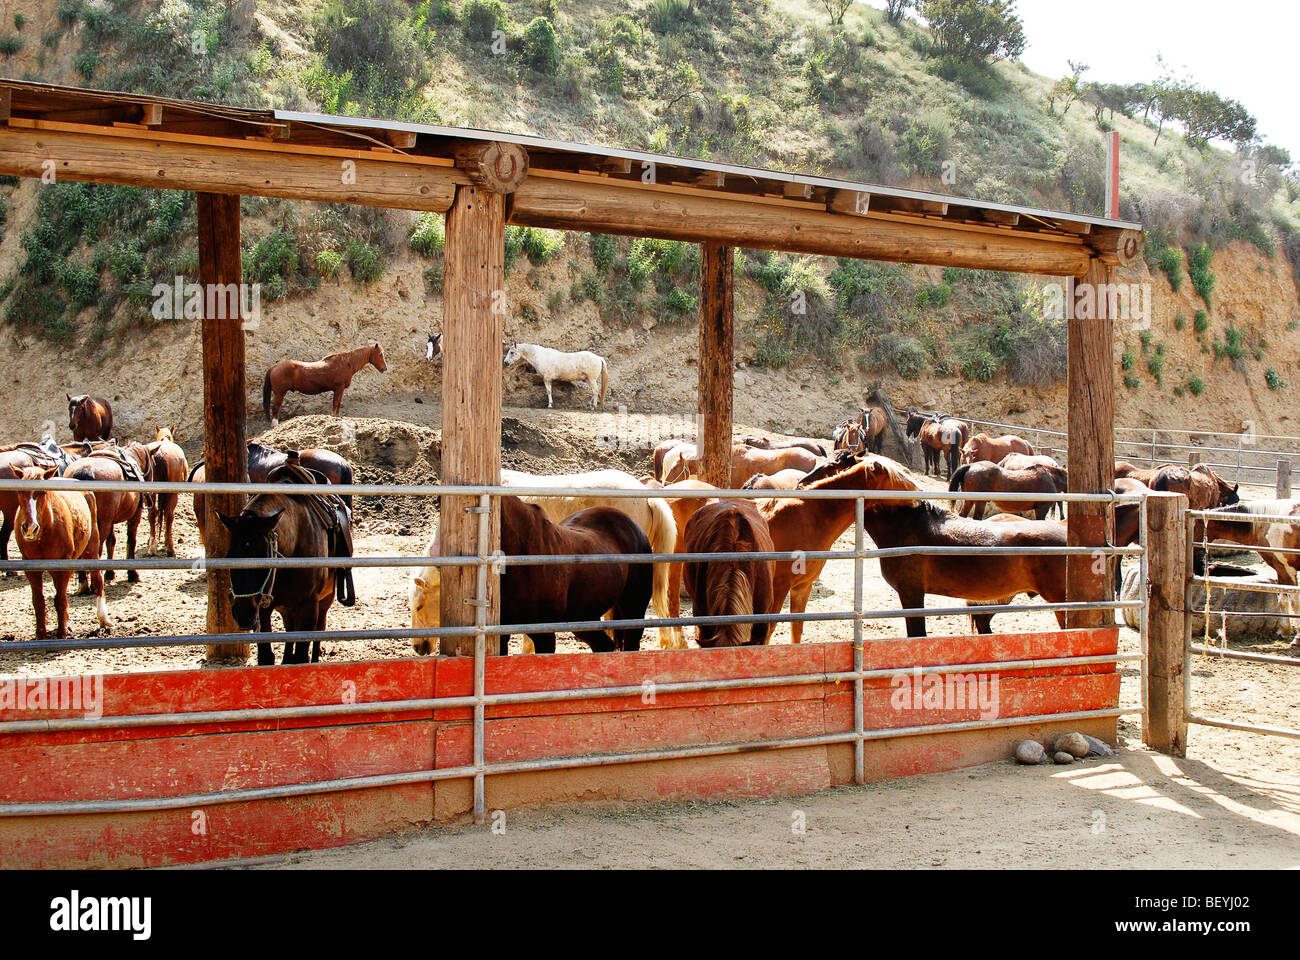 A crowd of horses await in a corral of horses to be ridden. Photo taken 01APR09 in Hollywood, Calif. - Stock Image